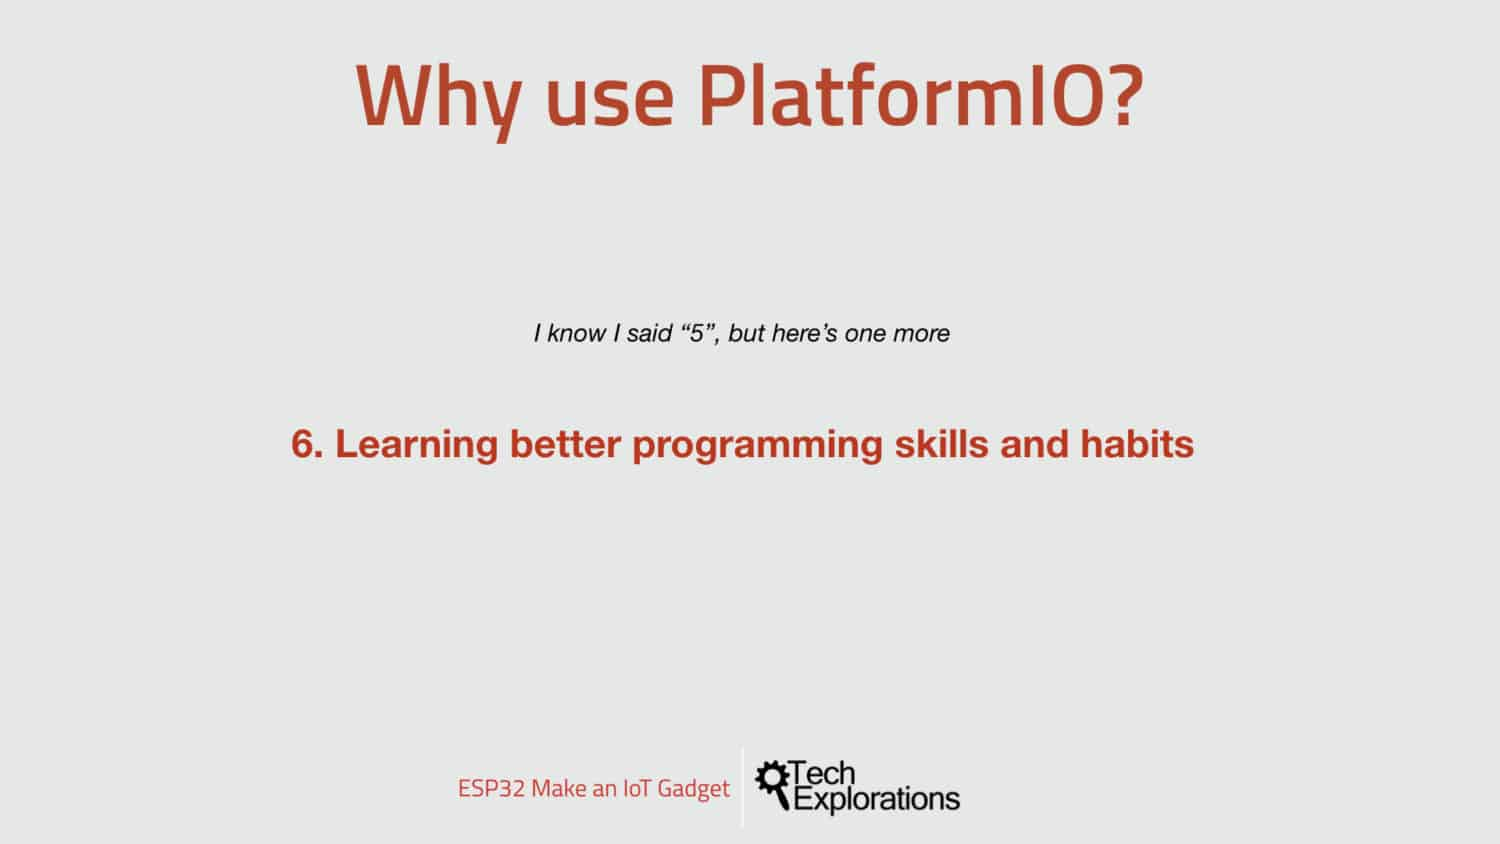 Reason 6: I want to learn better programming skills and habits.